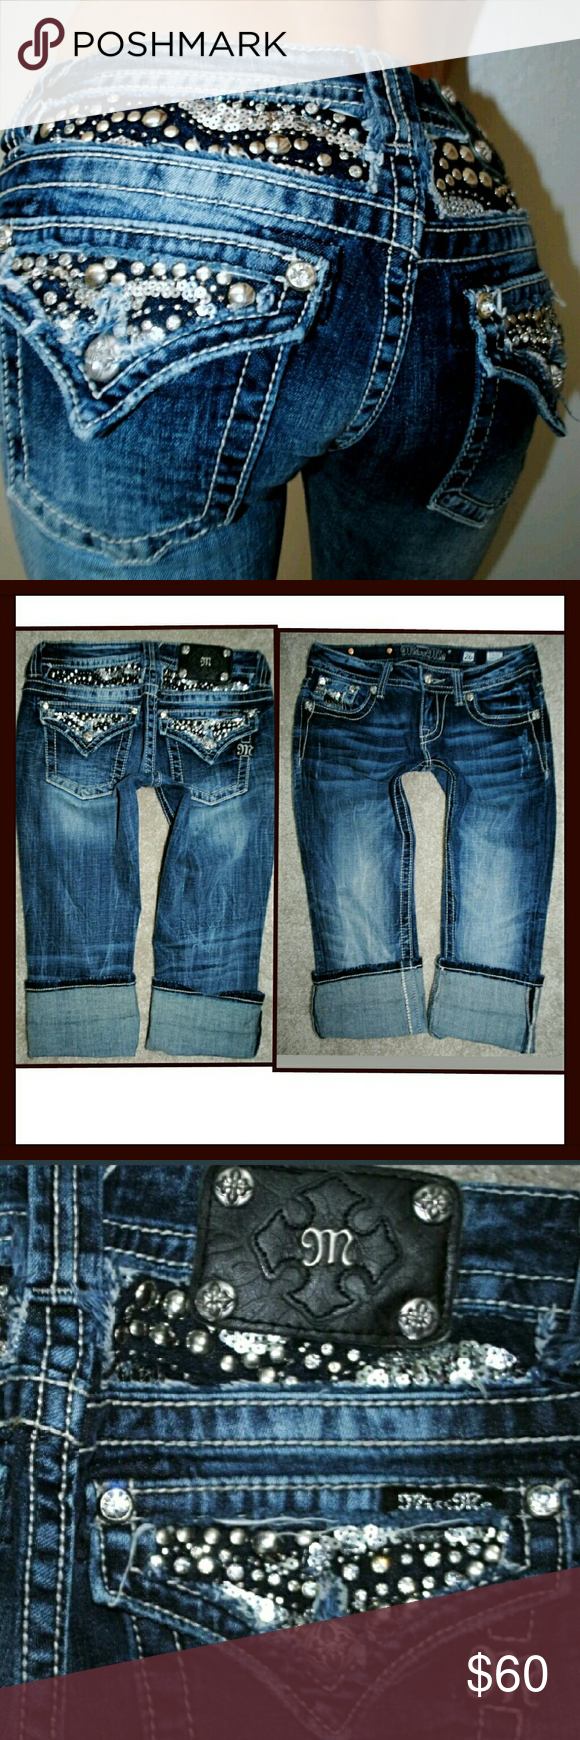 MISS ME CUFFED CAPRI RHINESTONE JEANS 2 26 No flaws. See  pics for serials and measurements. Miss Me Jeans Ankle & Cropped